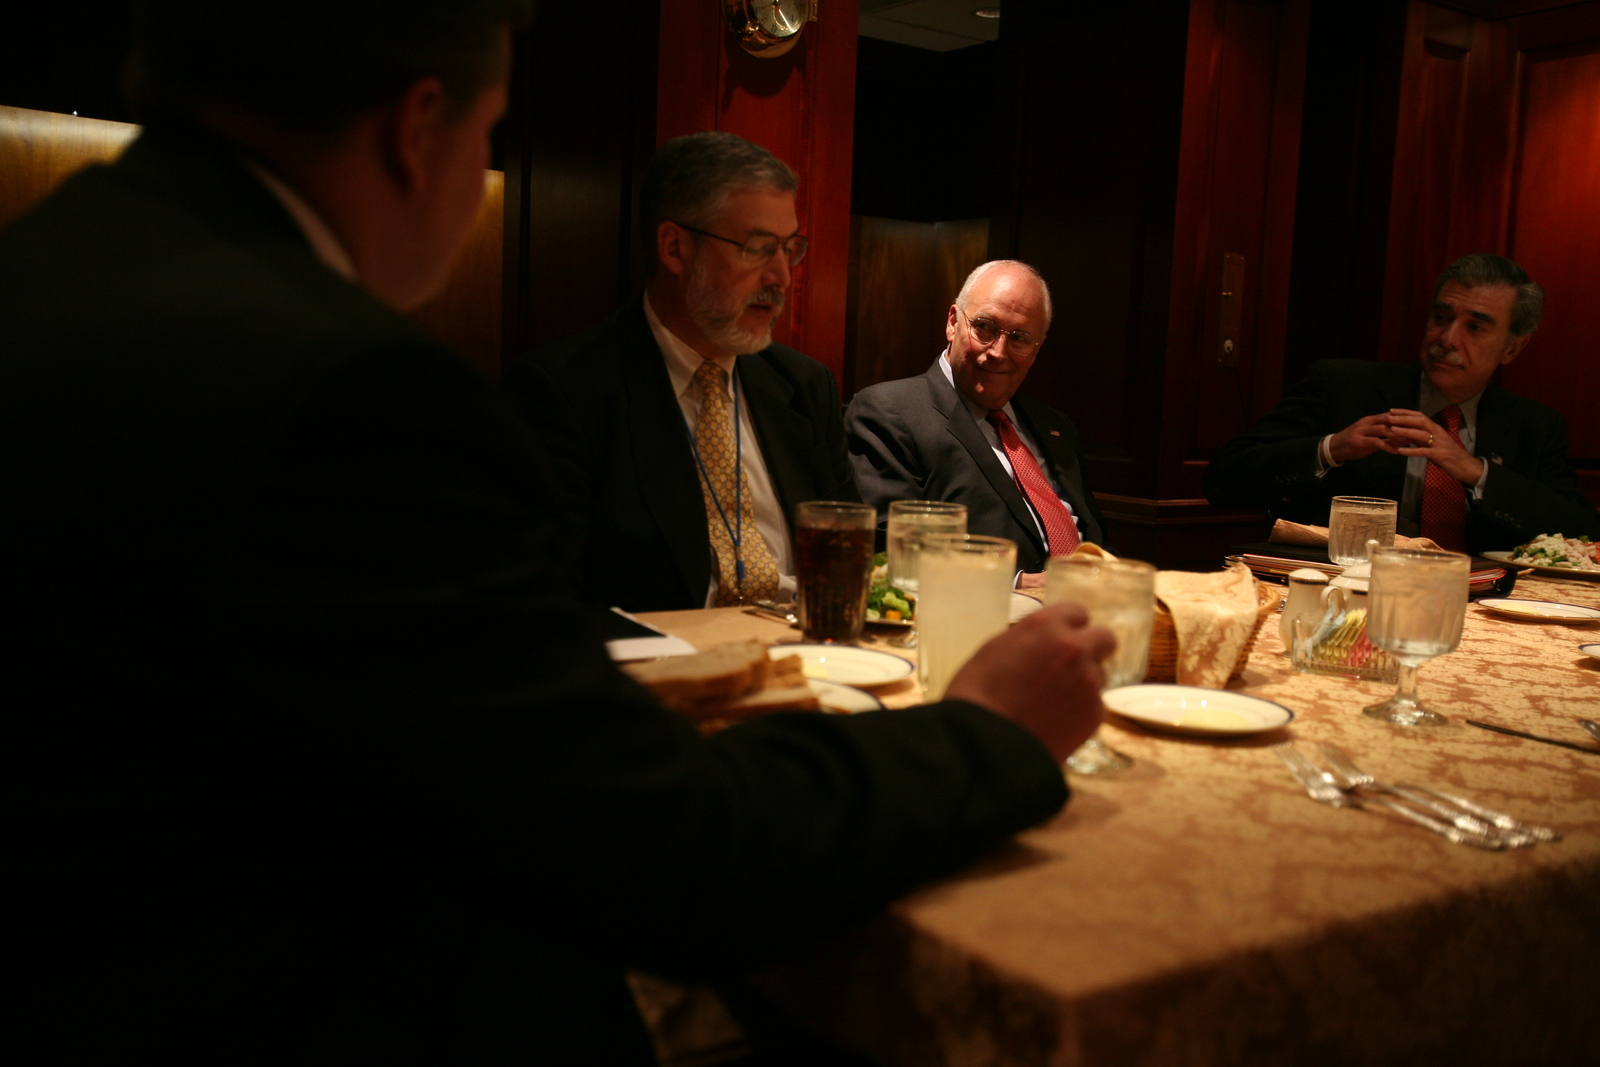 Vice President Cheney with David Addington at Economic Principals Lunch Held in the Ward Room of the White House Mess